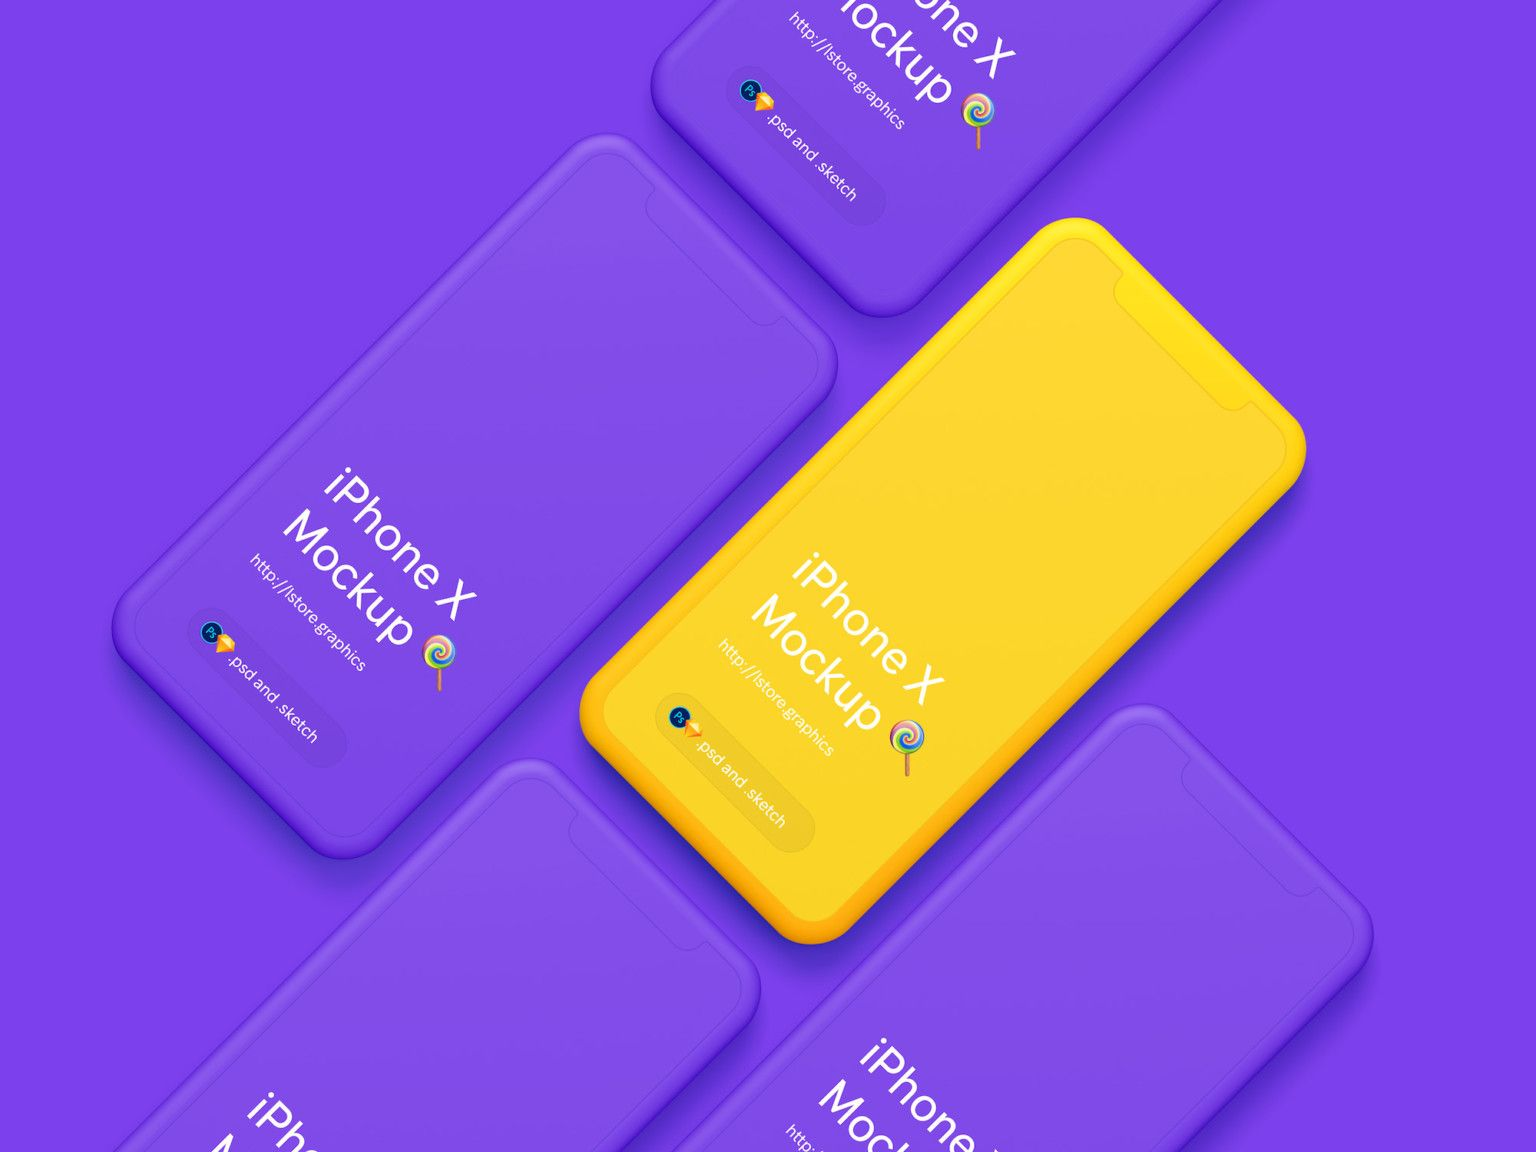 Download Simple Iphone X Mockups For Sketch And Photoshop Fribly Iphone Mockup Iphone Mockup Psd Free Iphone